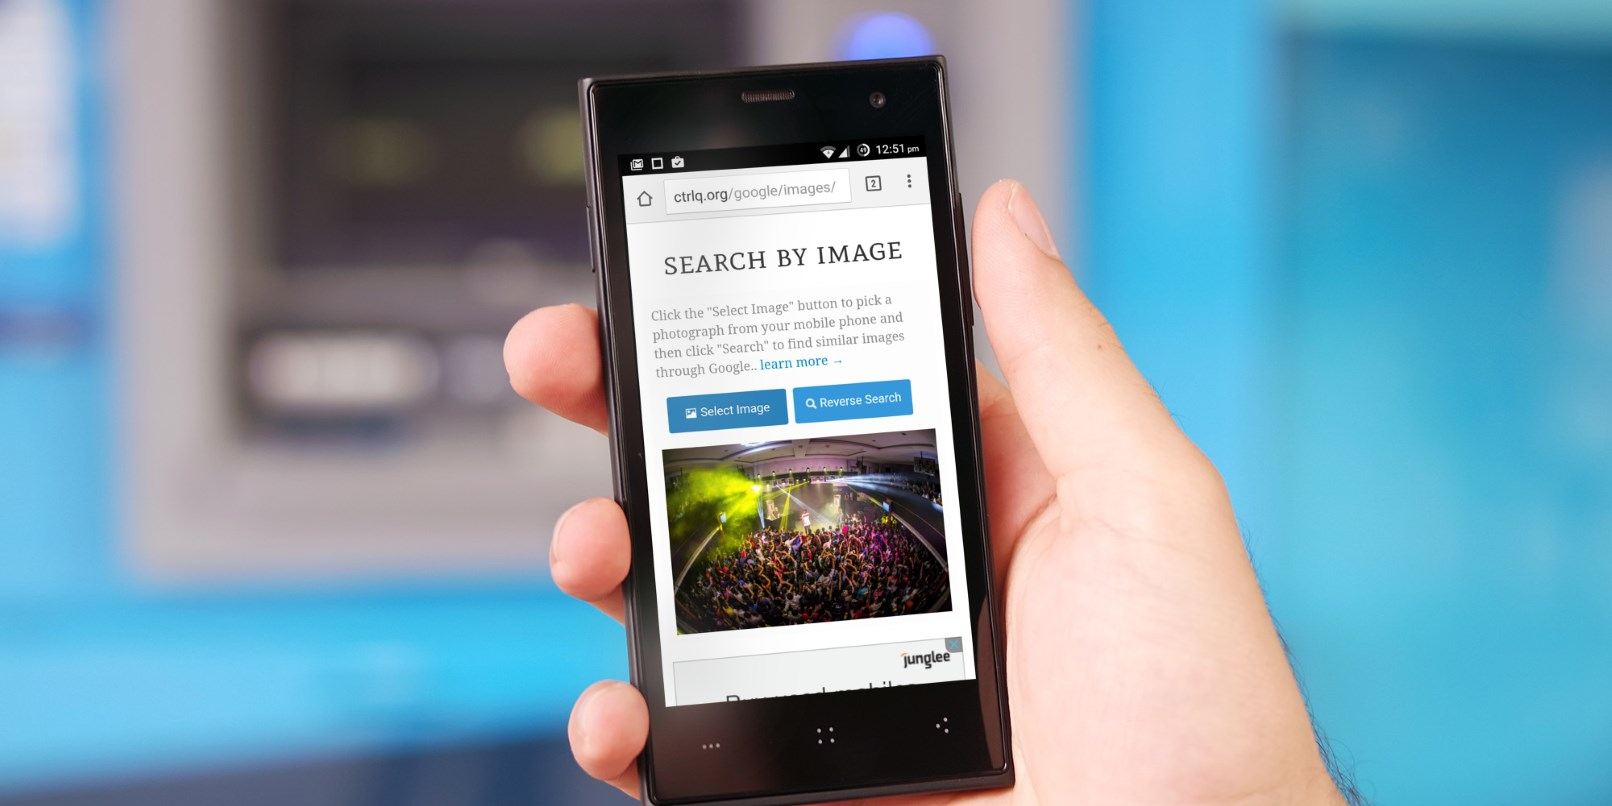 Use Google reverse image search on your phone